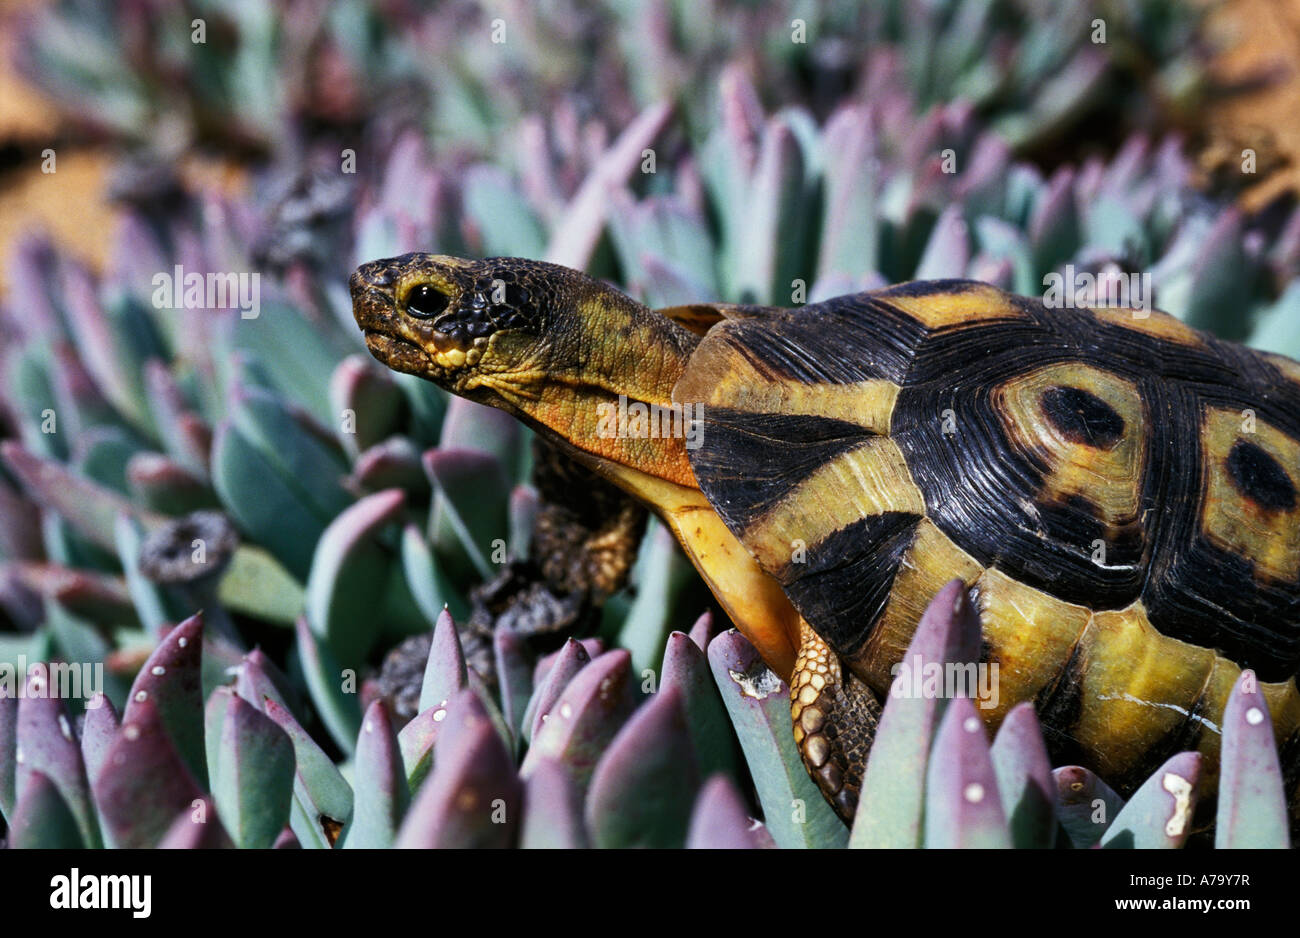 Portrait of angulated tortoise crawling through t noutsiama Cheiridopsis species near Springbok Namaqualand - Stock Image